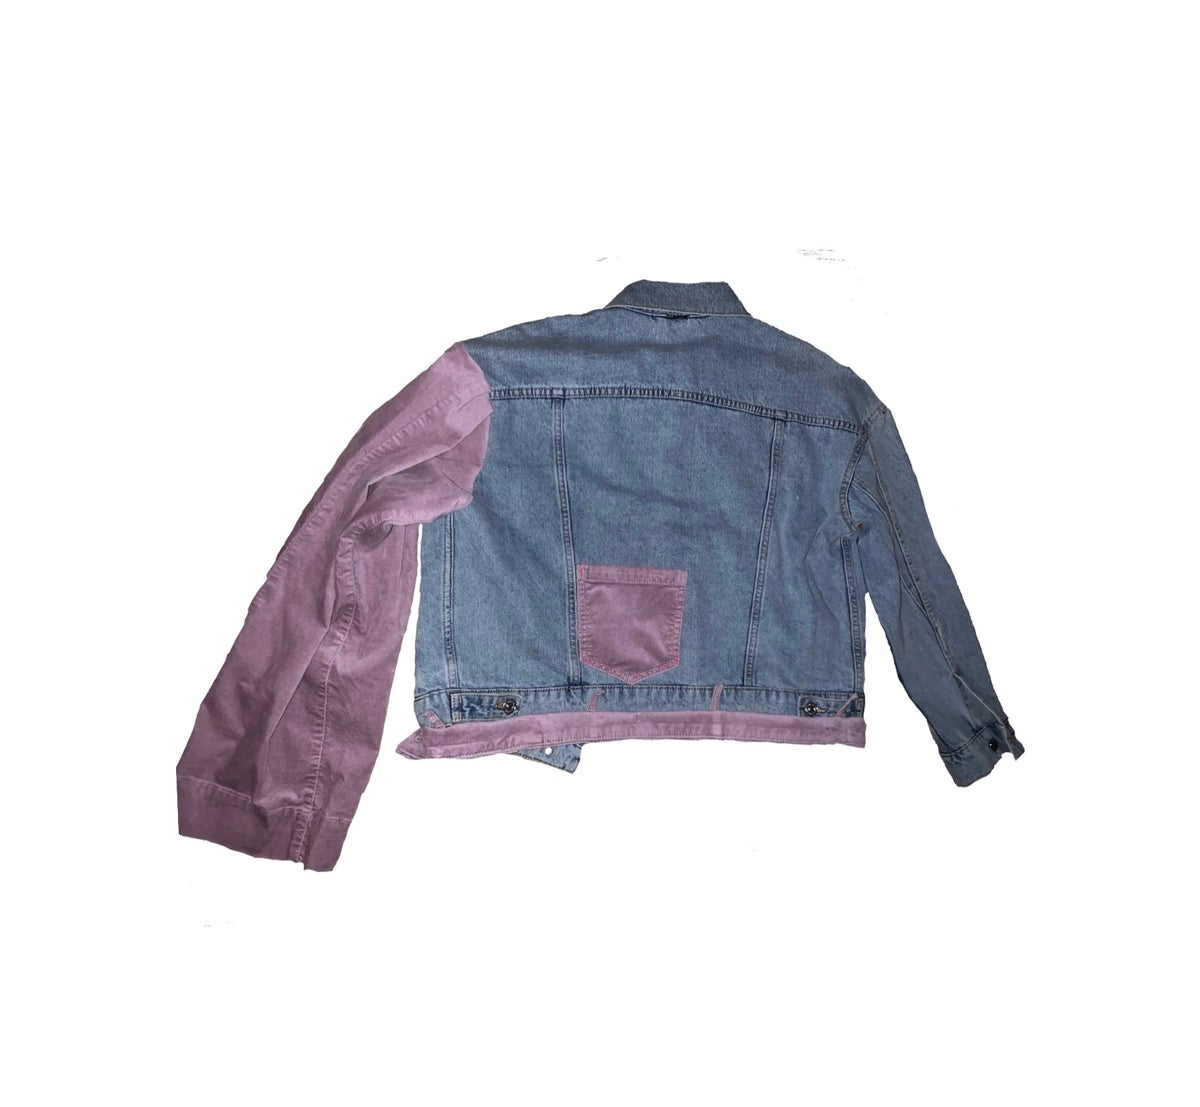 1 of 1 Denim Jacket